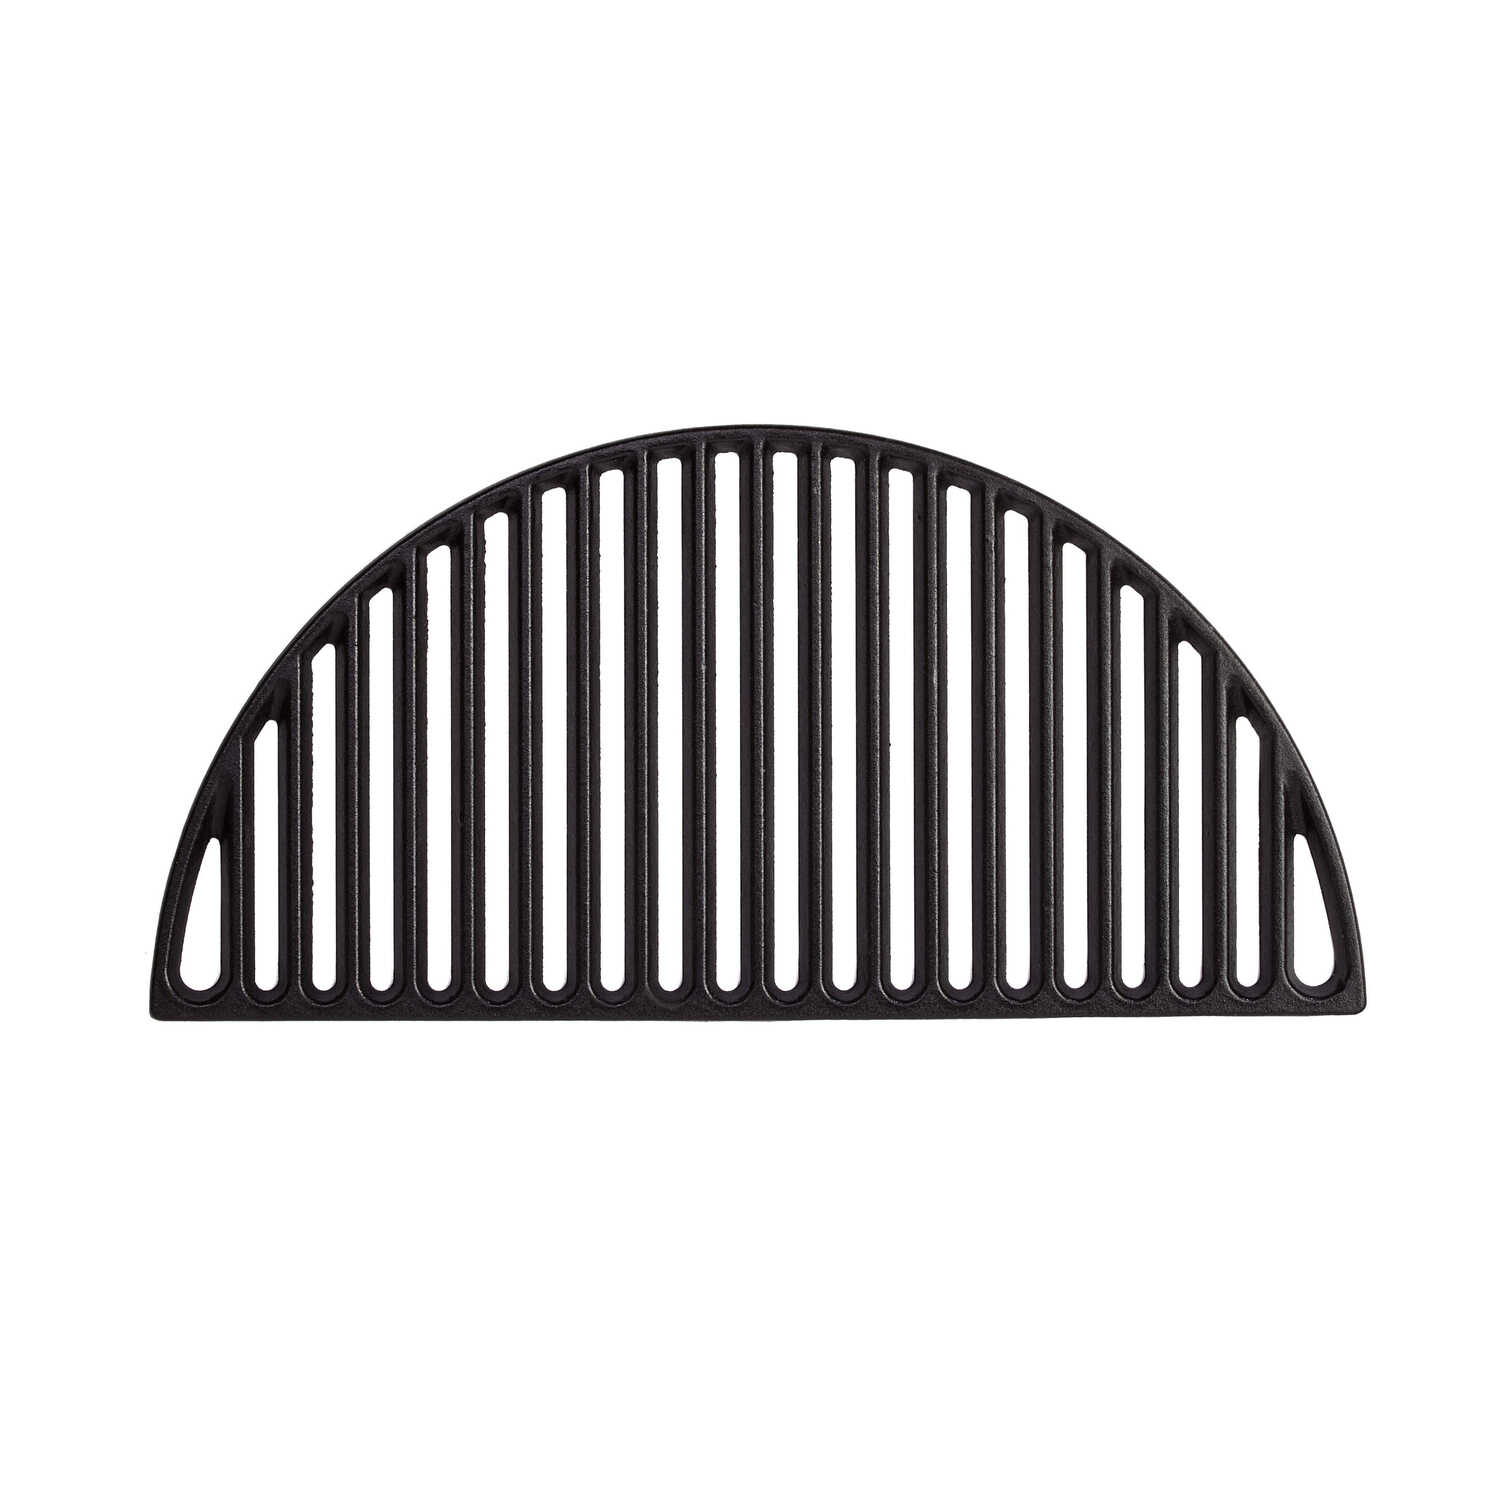 Kamado Joe  Classic  Cast Iron  Grill Cooking Grate  18-1/2 in. W